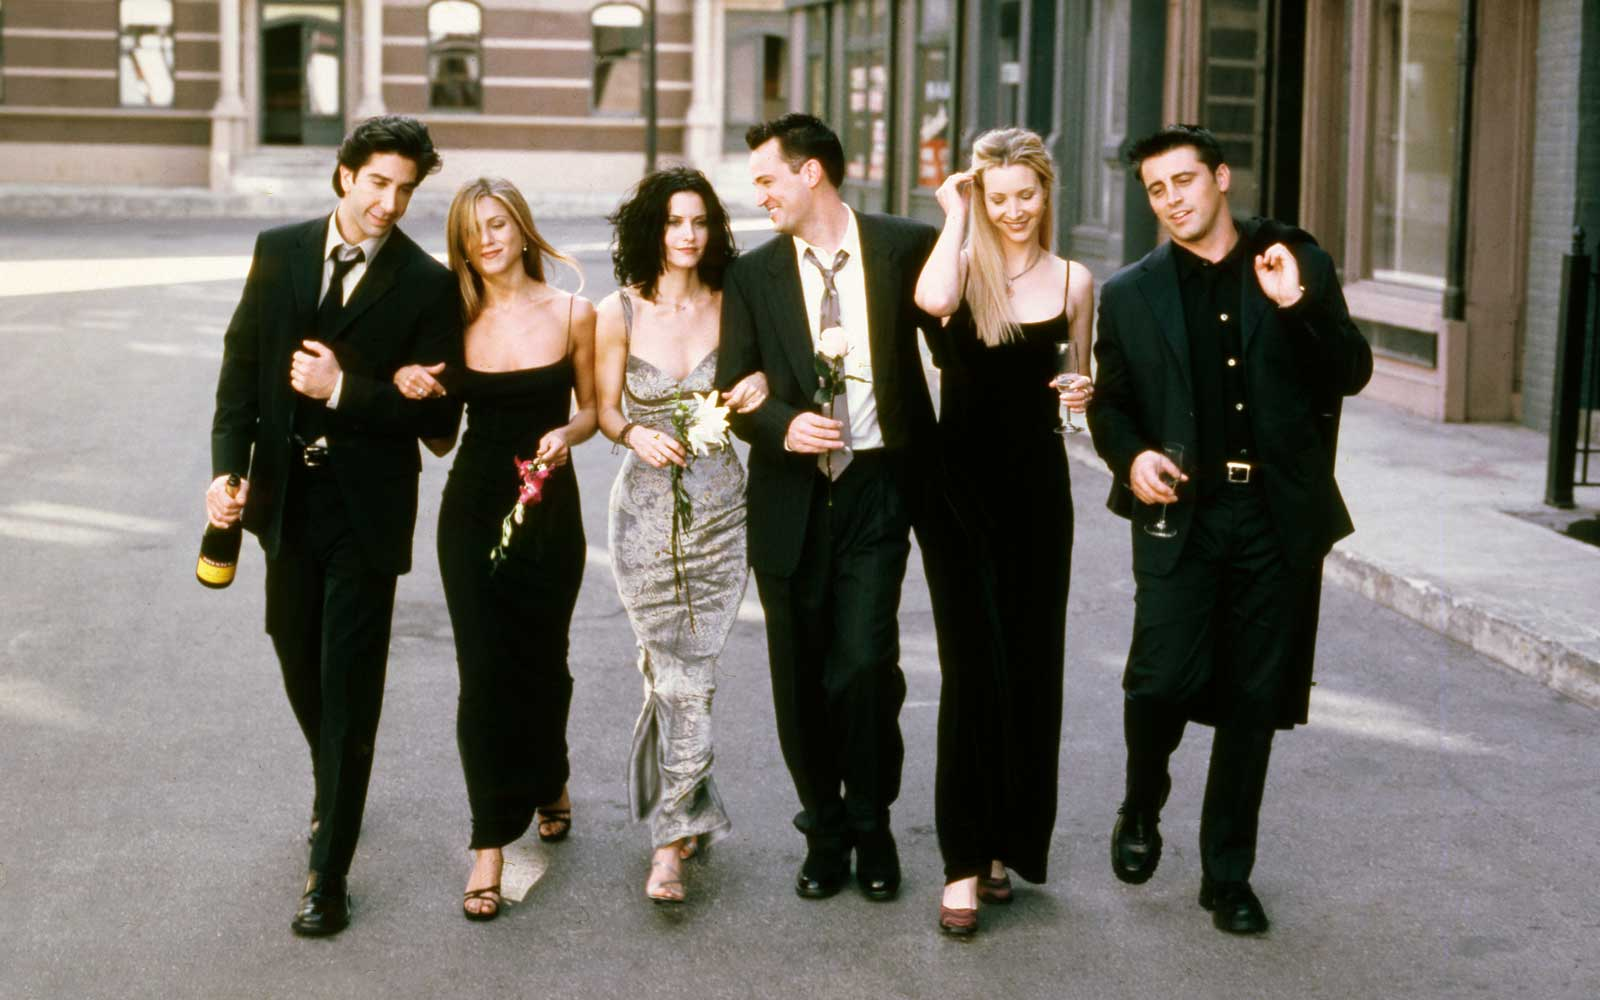 12 of the Best 'Friends' Episodes Are Coming to Theaters for the Show's 25th Anniversary